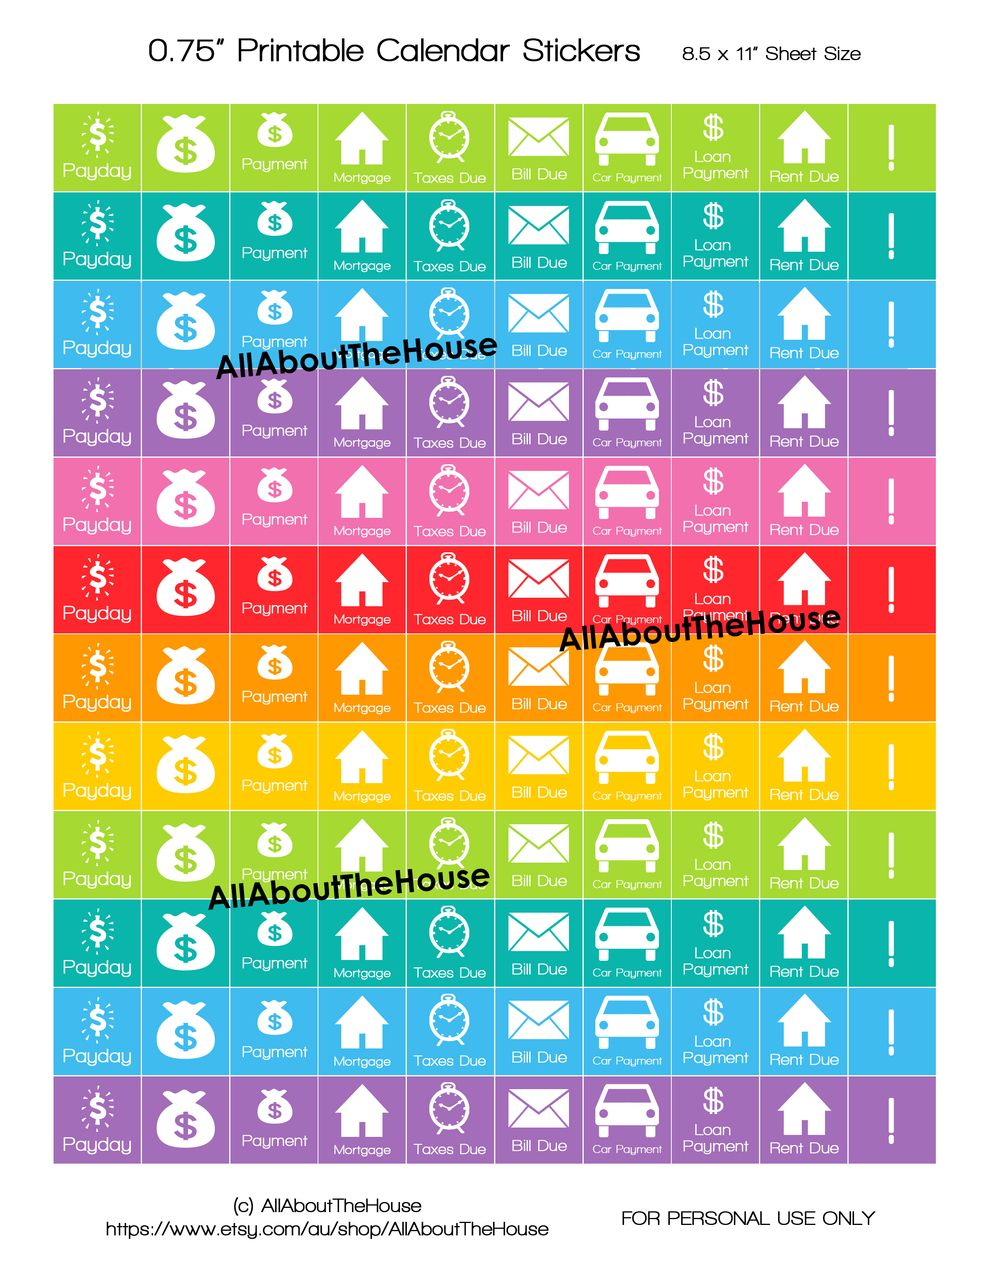 picture about Printable Calendar Stickers named Printable Calendar / Planner Stickers - Rainbow Every day and